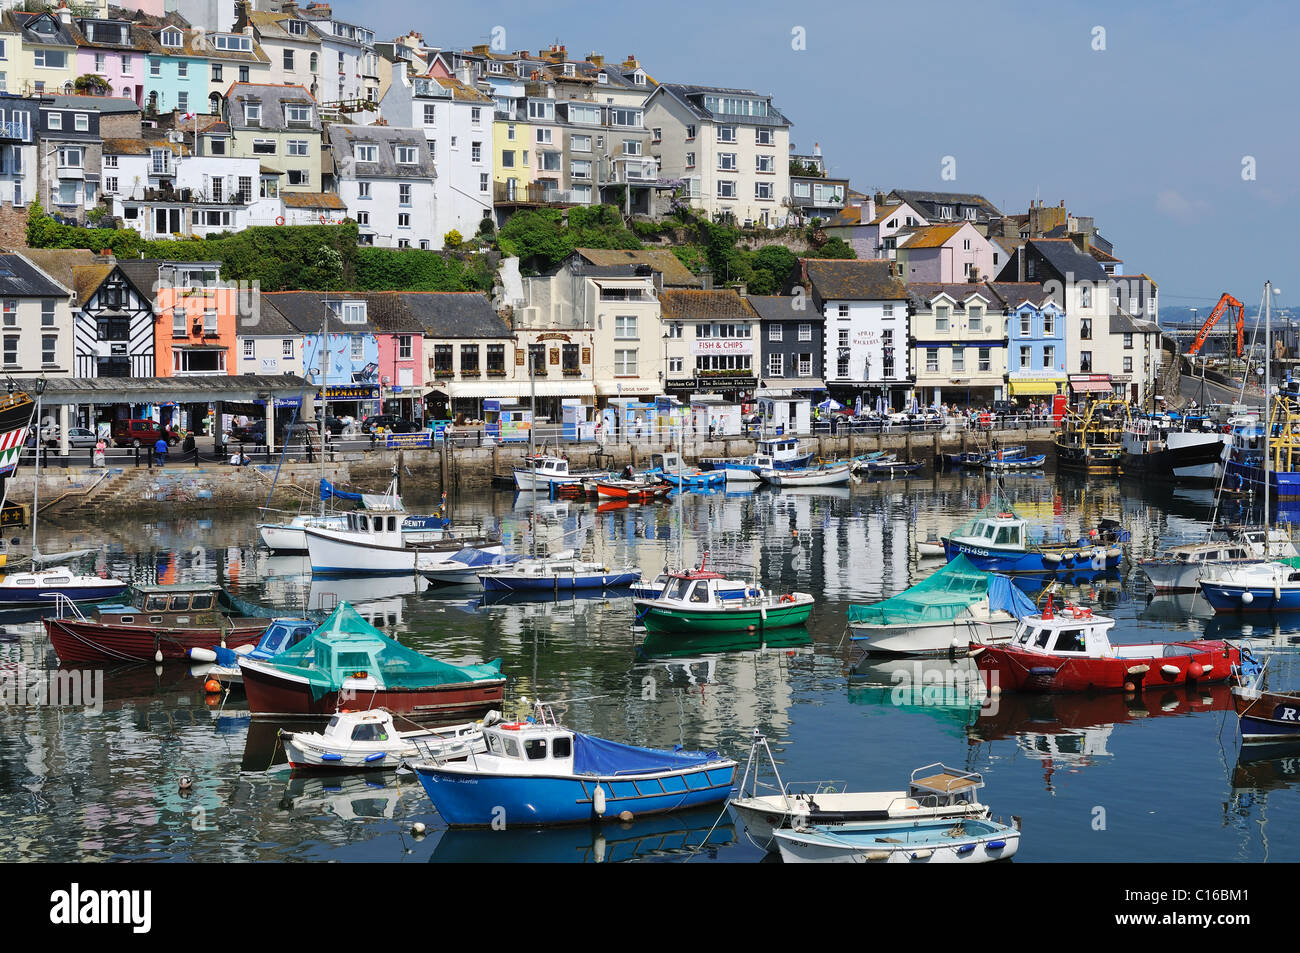 boats moored in the harbour at brixham, devon, uk - Stock Image